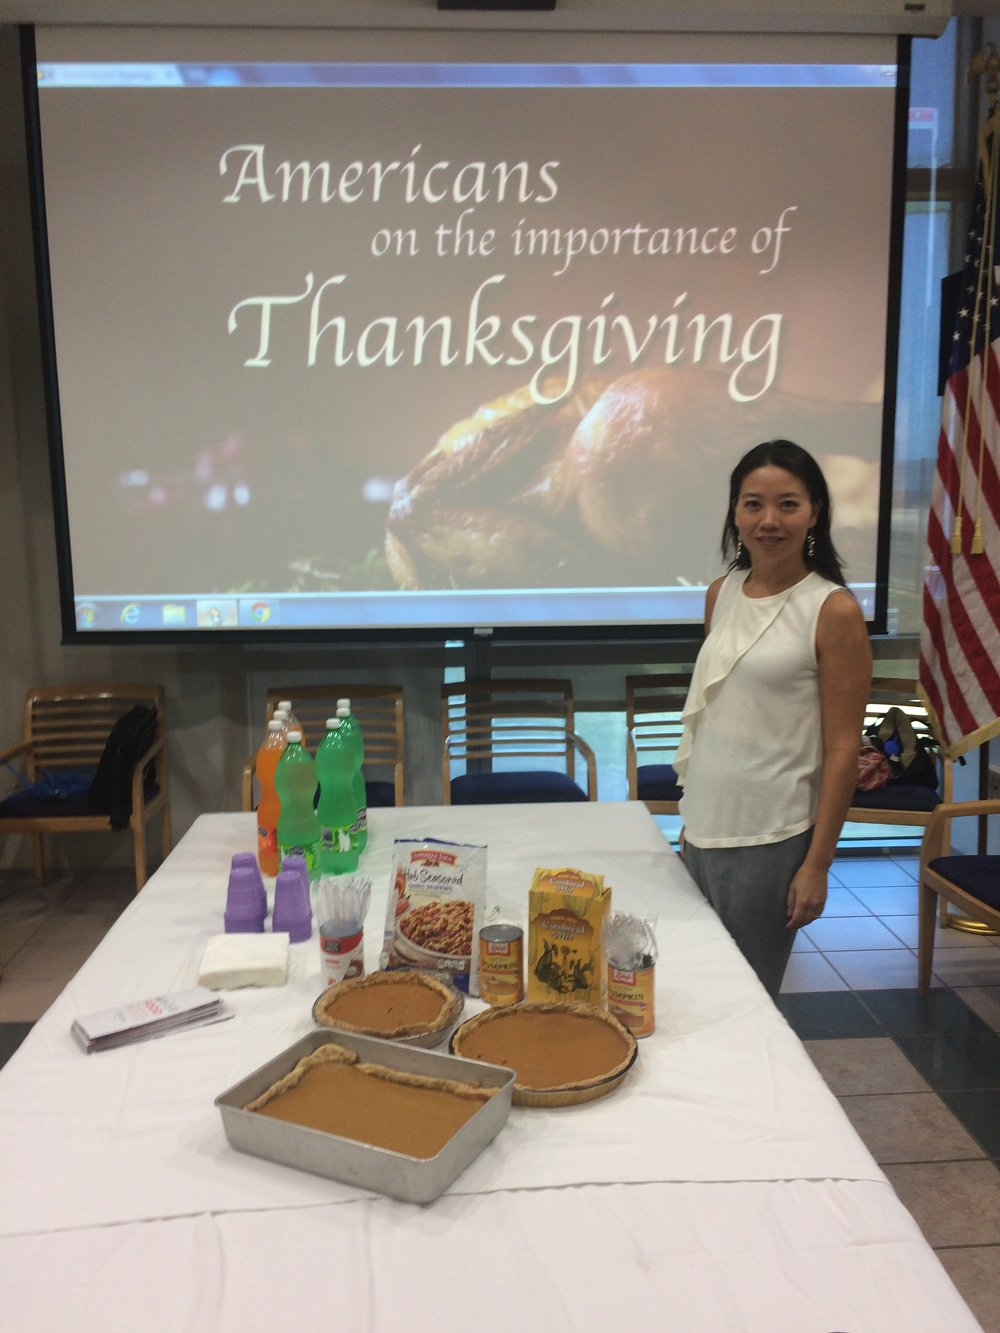 The typical American packaged goods for Thanksgiving were a novelty to the Cuban audience.